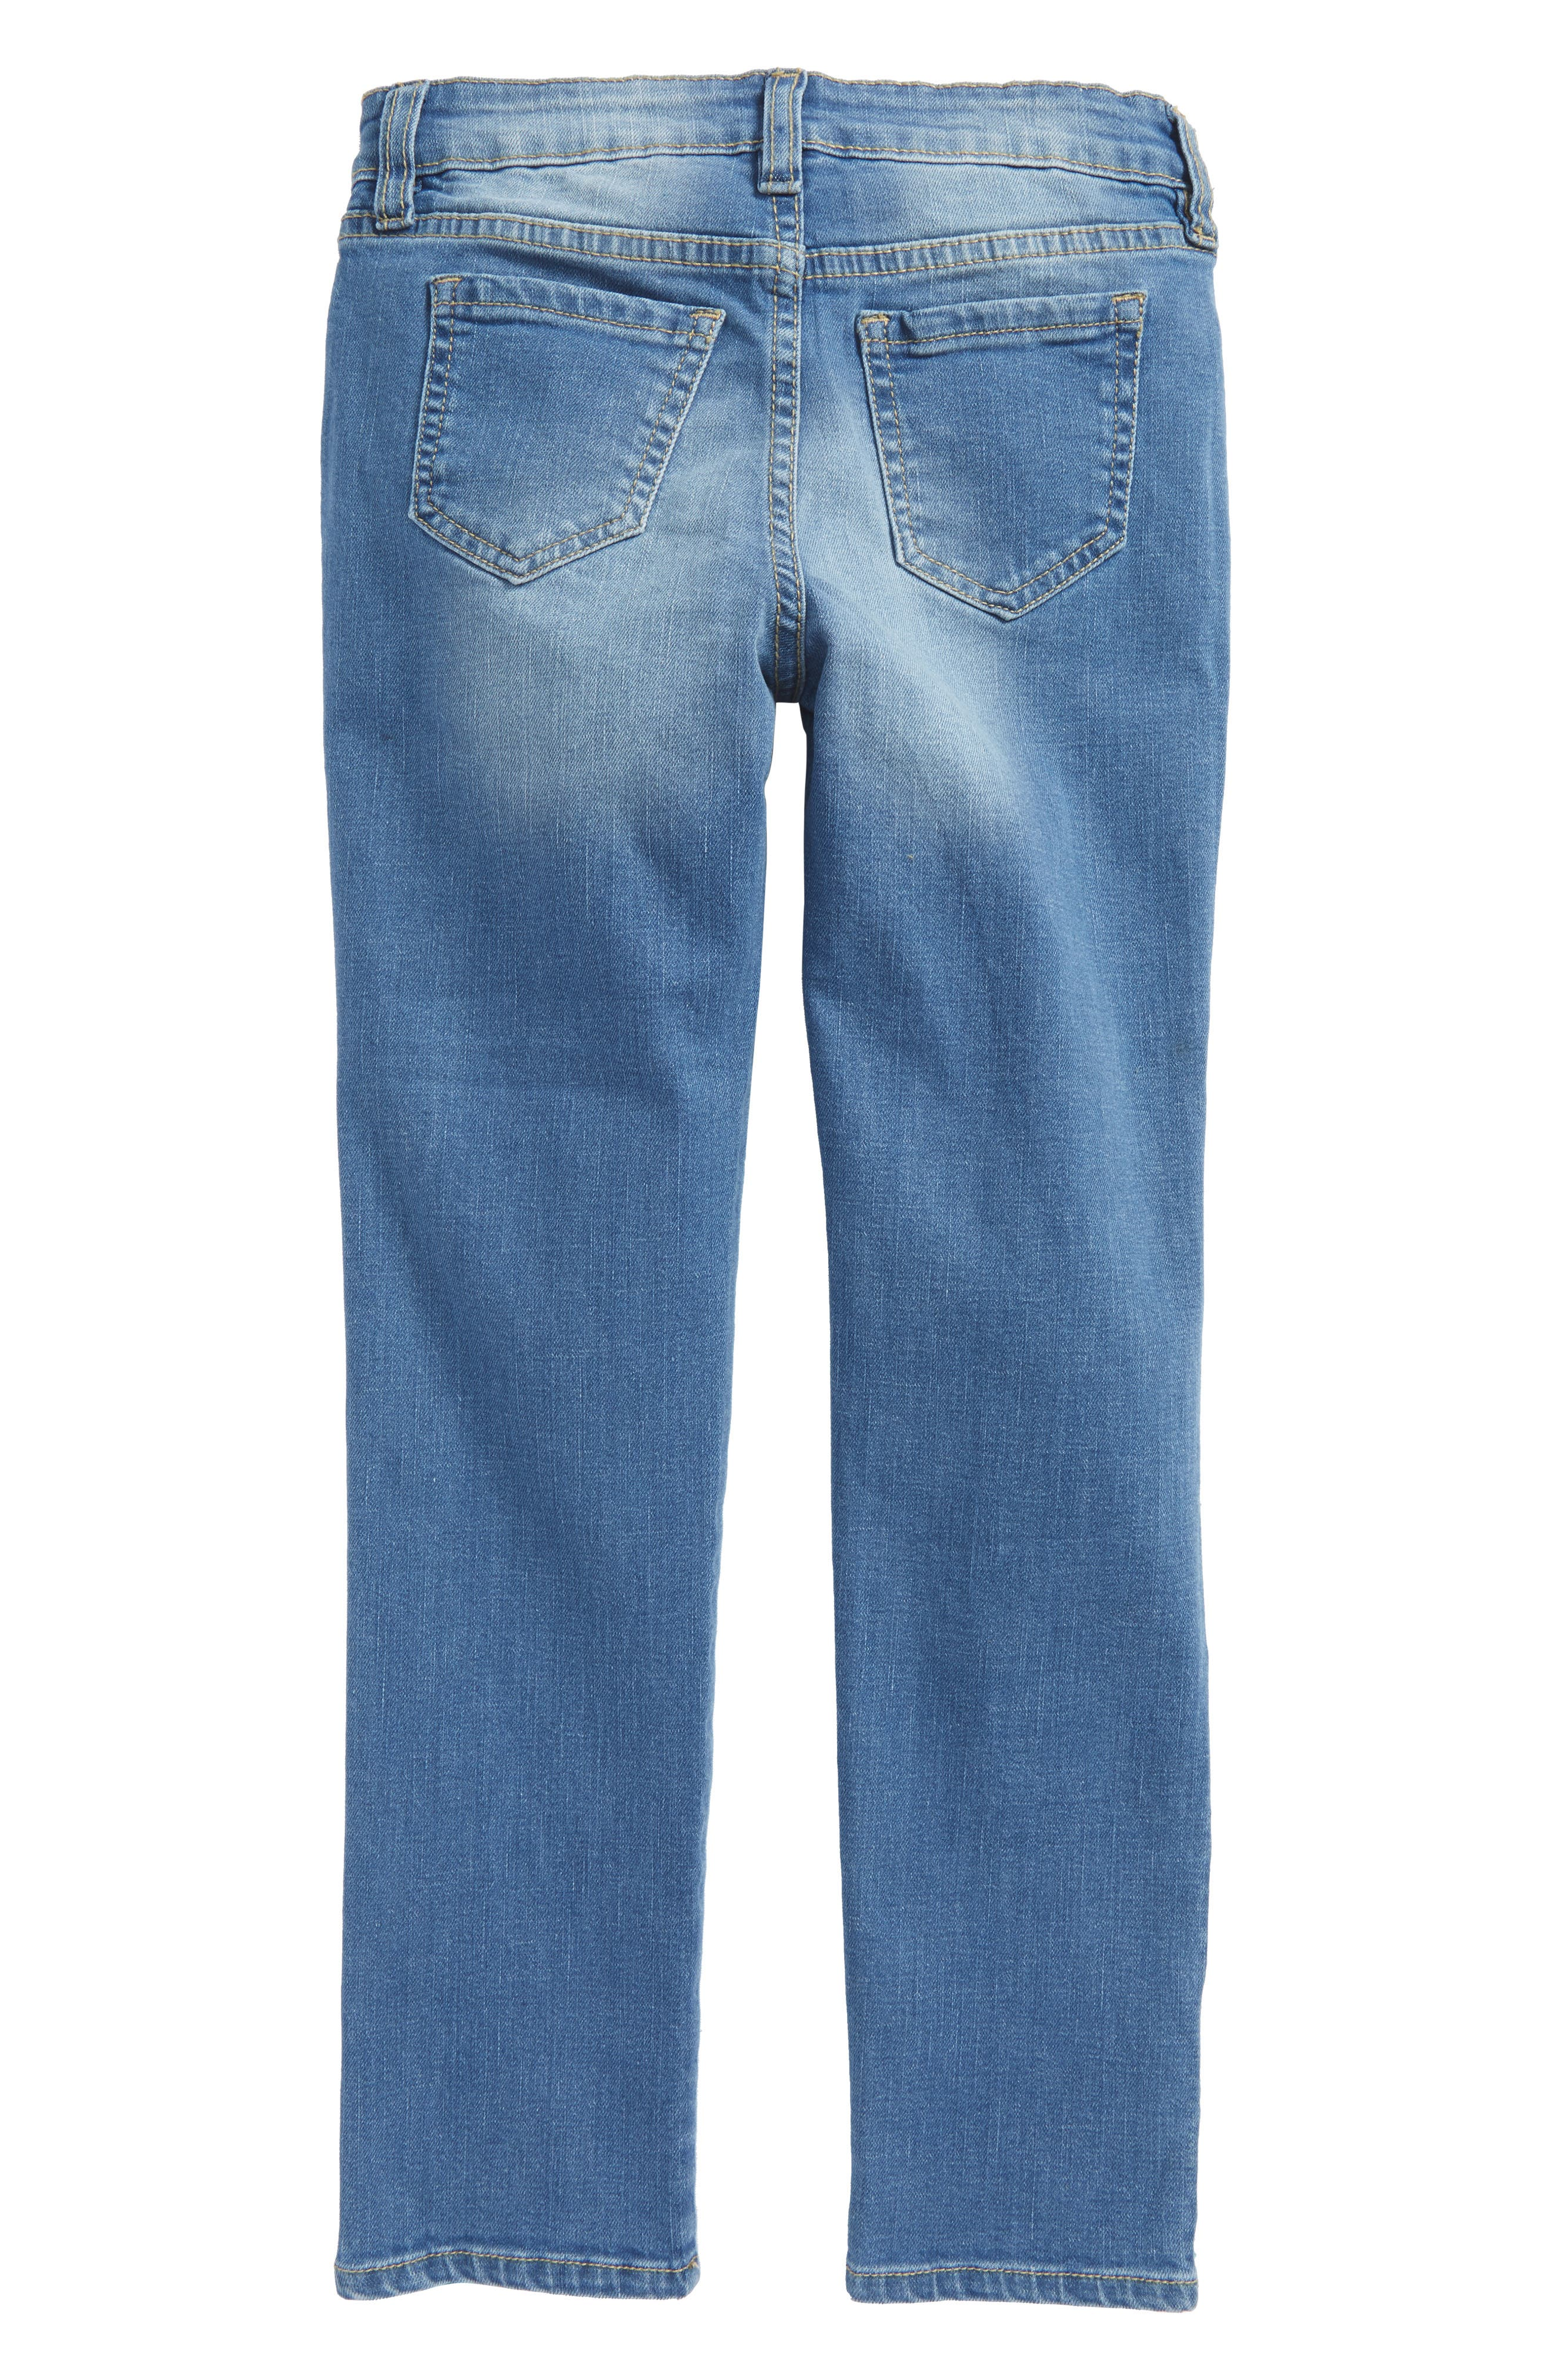 Taylor Embroidered Skinny Jeans,                             Alternate thumbnail 2, color,                             416